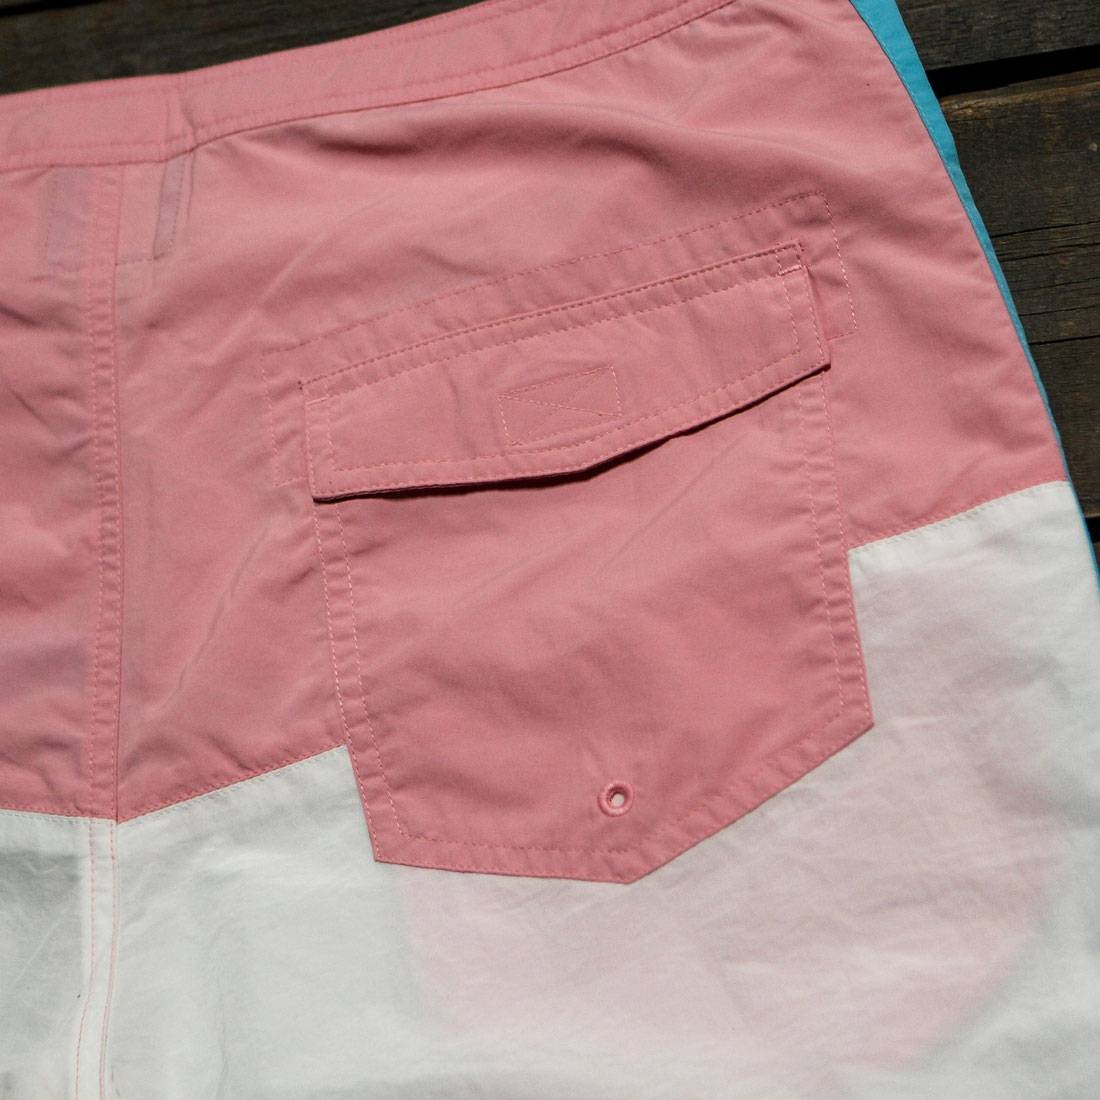 Barney Cools Men Classic 17 Shorts pink white blue